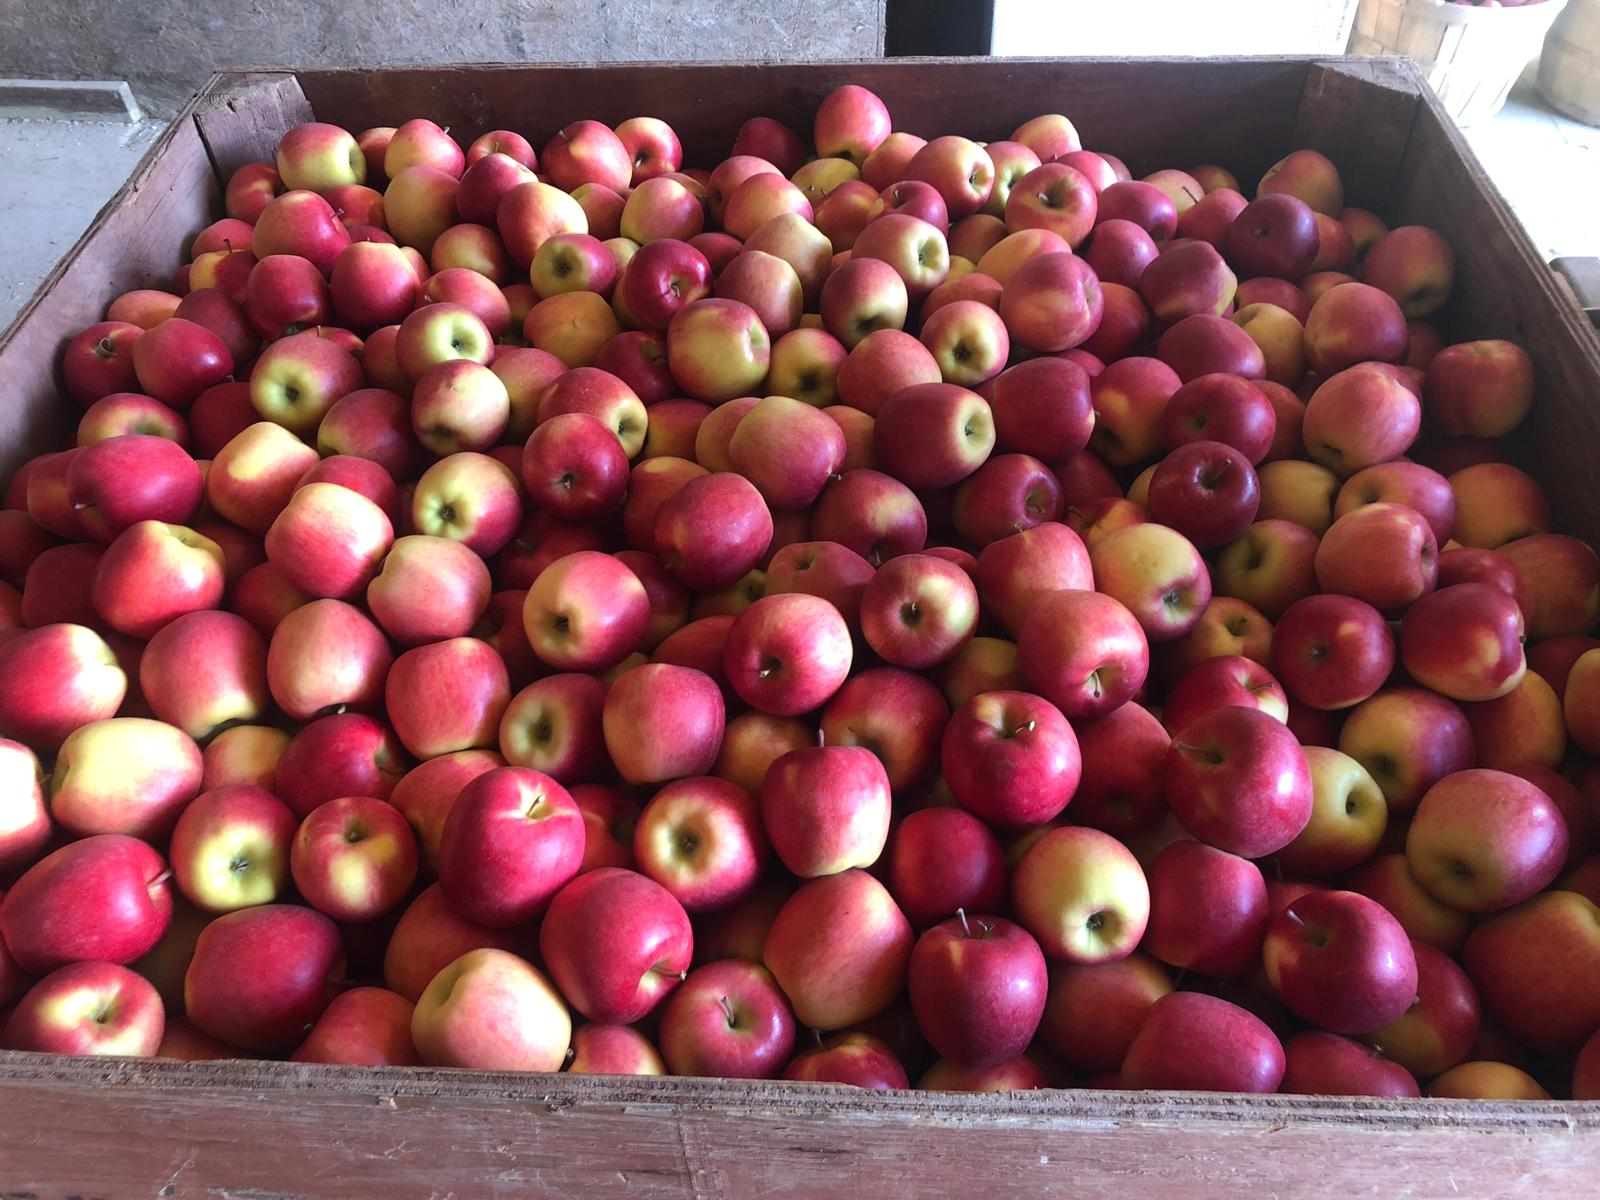 Locally sourced apples for craft cider in PEC